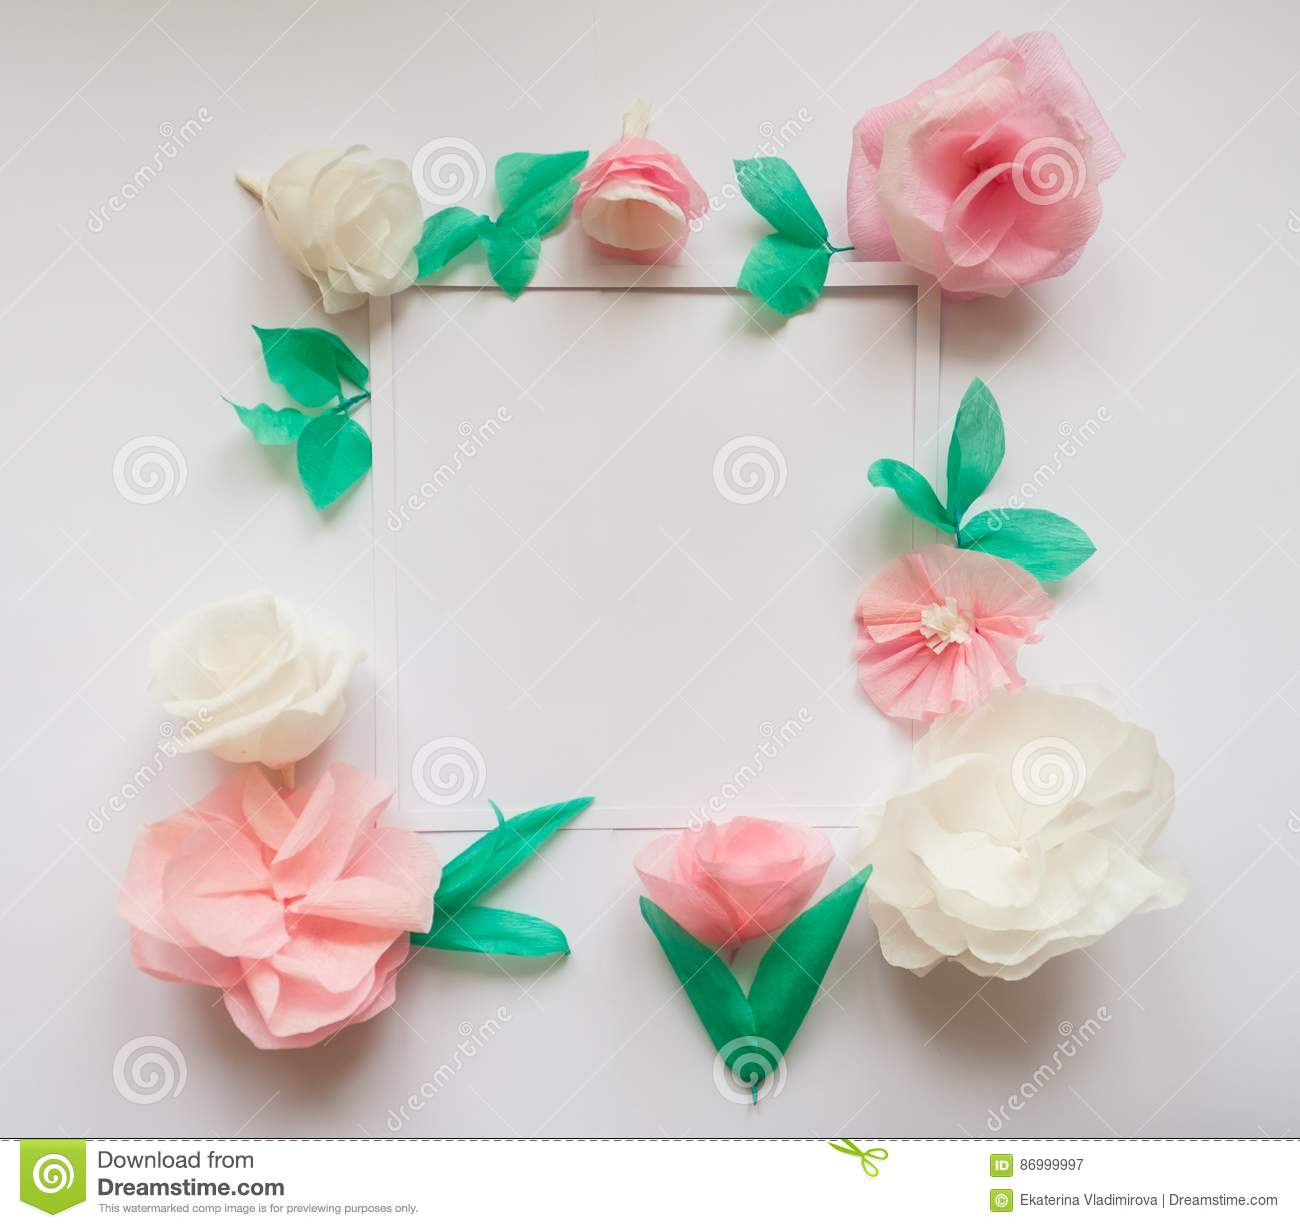 Square Frame With Color Paper Flowers Flat Lay Nature Concept